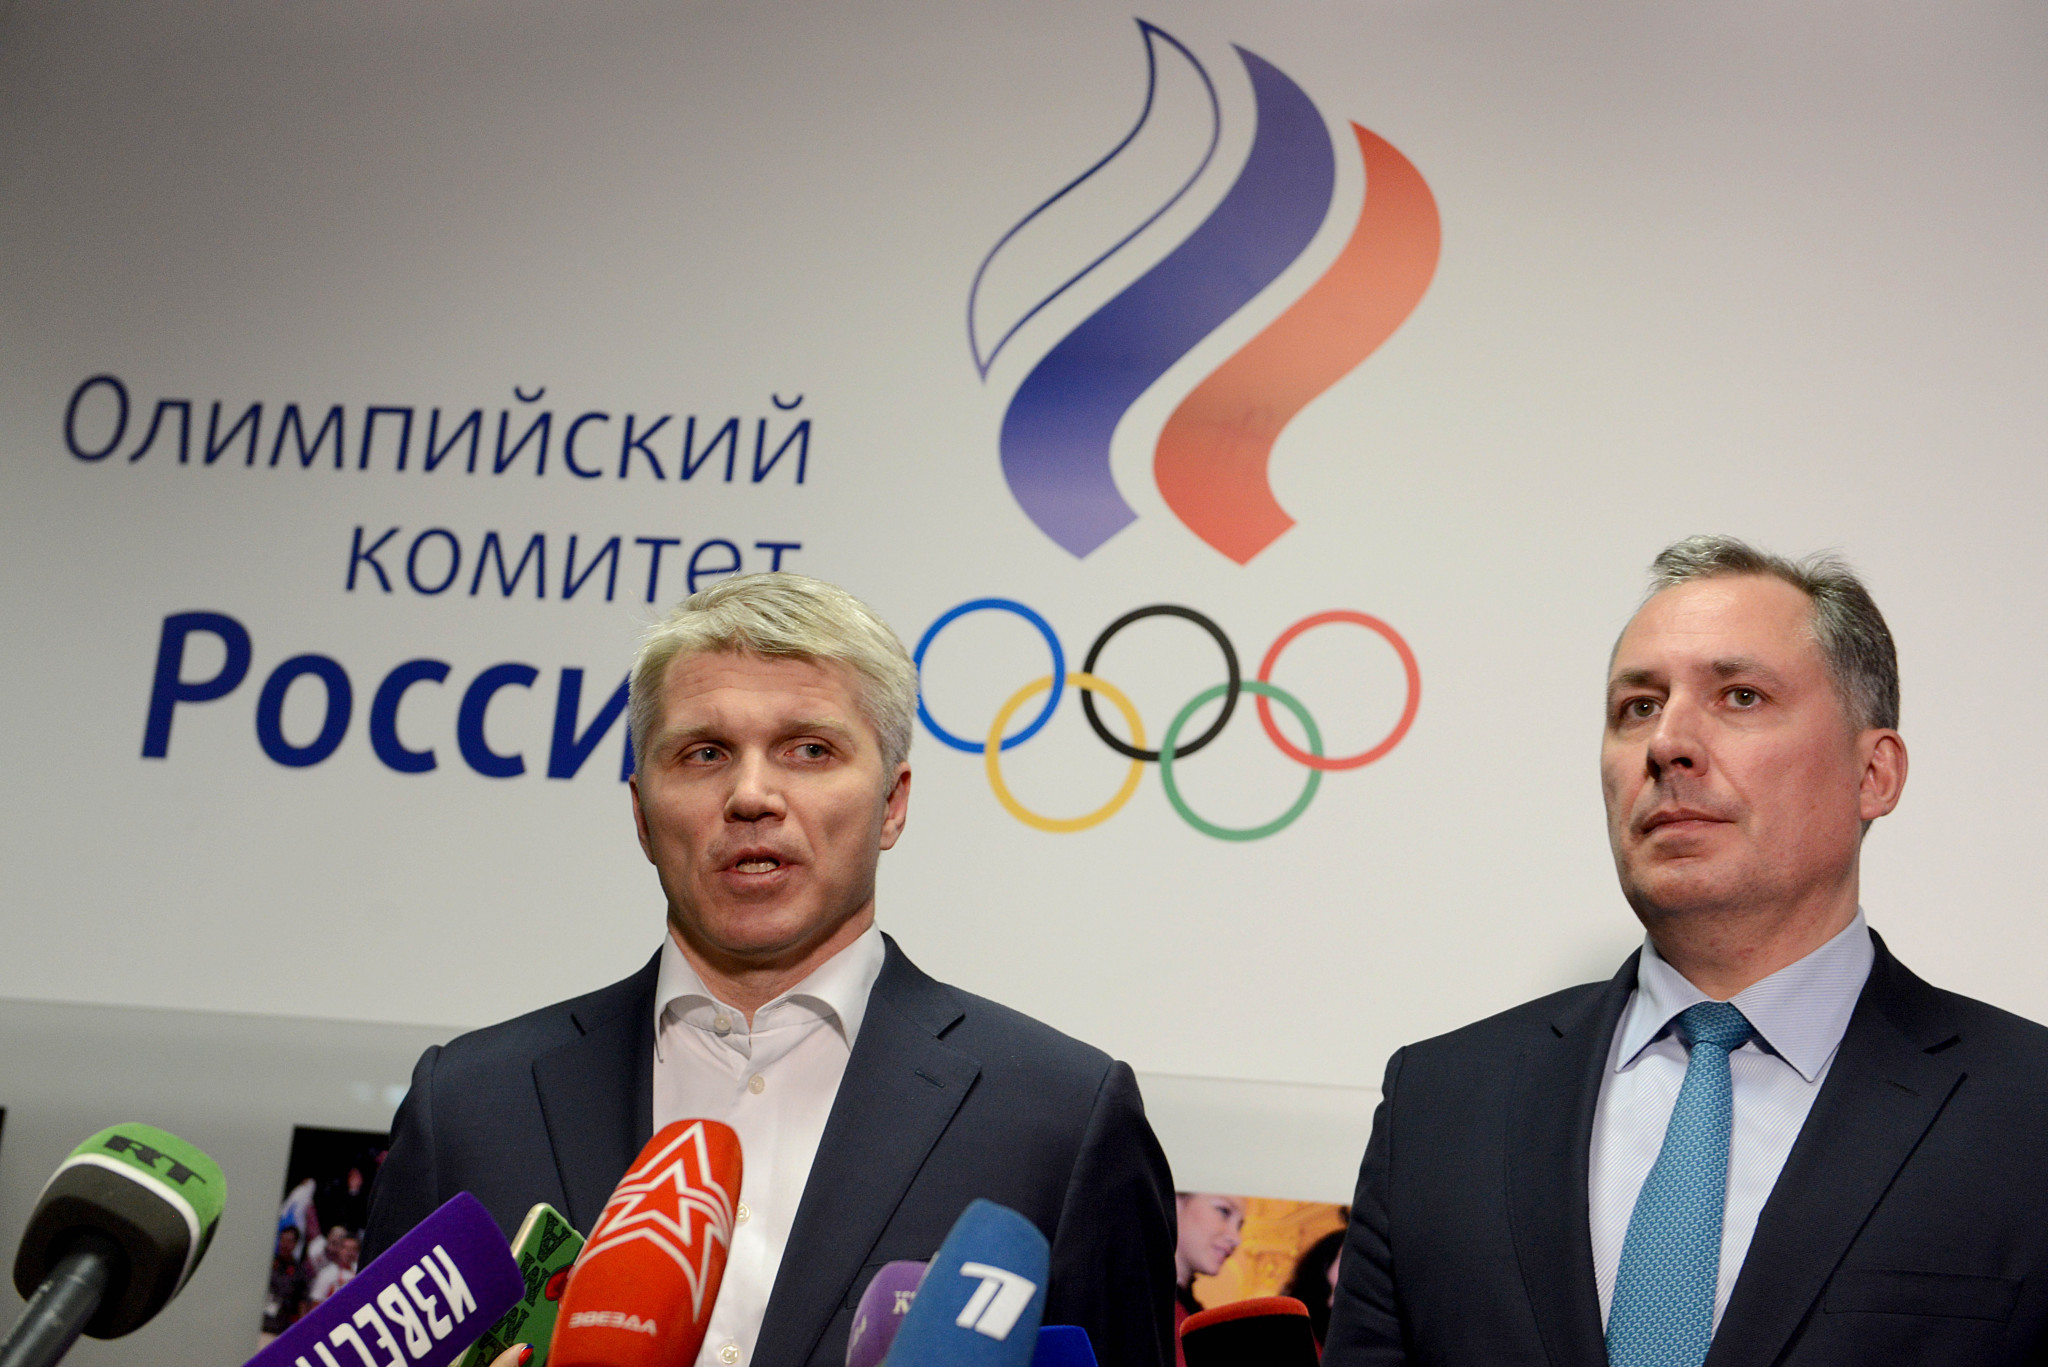 Russian Olympic Committee President Stanislav Pozdnyakov, right, and the country's Sports Minister Pavel Kolobkov, left, are both Olympic gold medal-winning fencers ©ROC